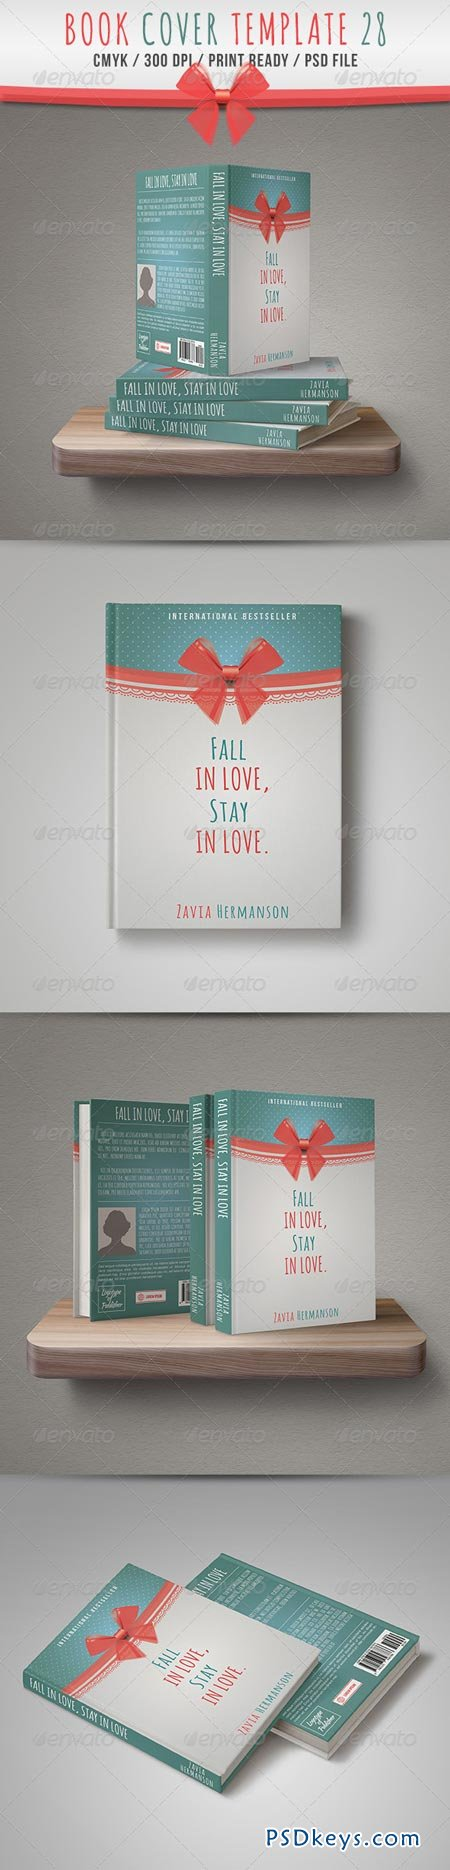 Book Cover Template 28 7790166